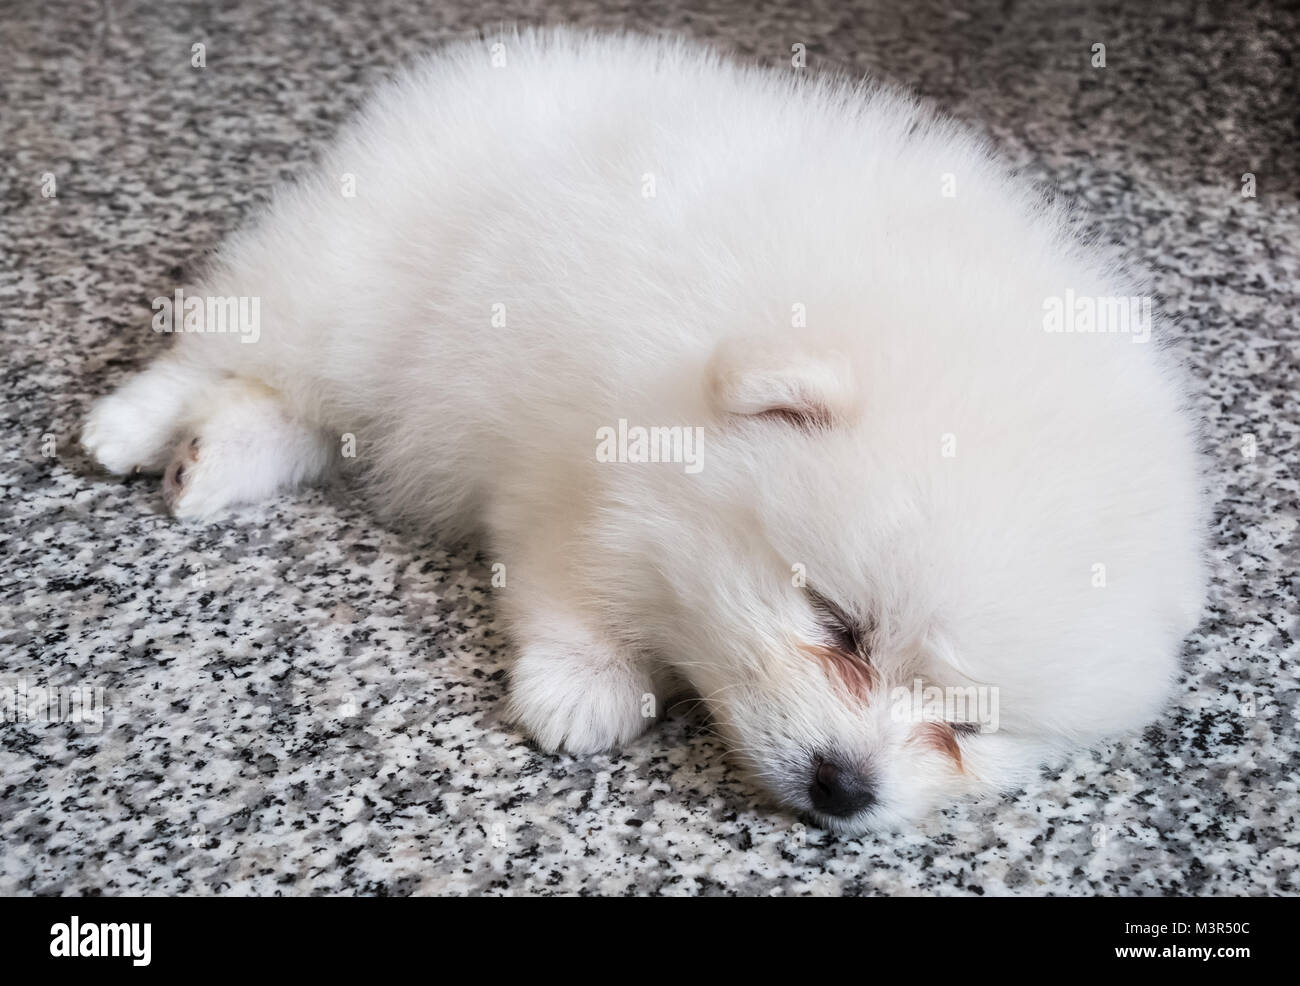 White Pomeranian Stock Photos & White Pomeranian Stock Images - Alamy